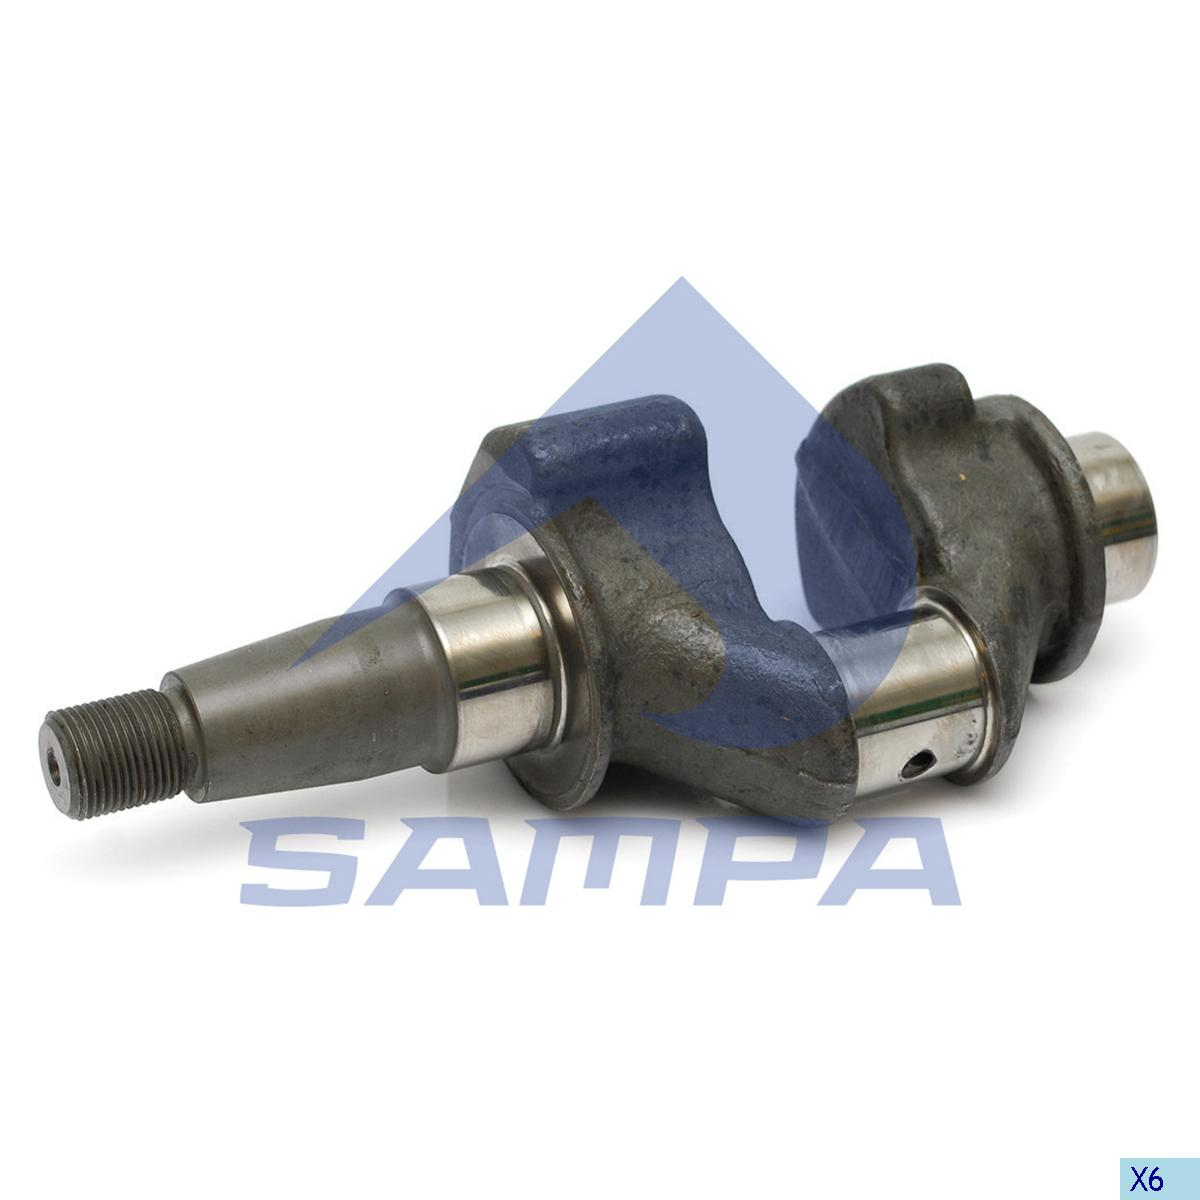 Crank Shaft, Cylinder Block, Volvo, Compressed Air System